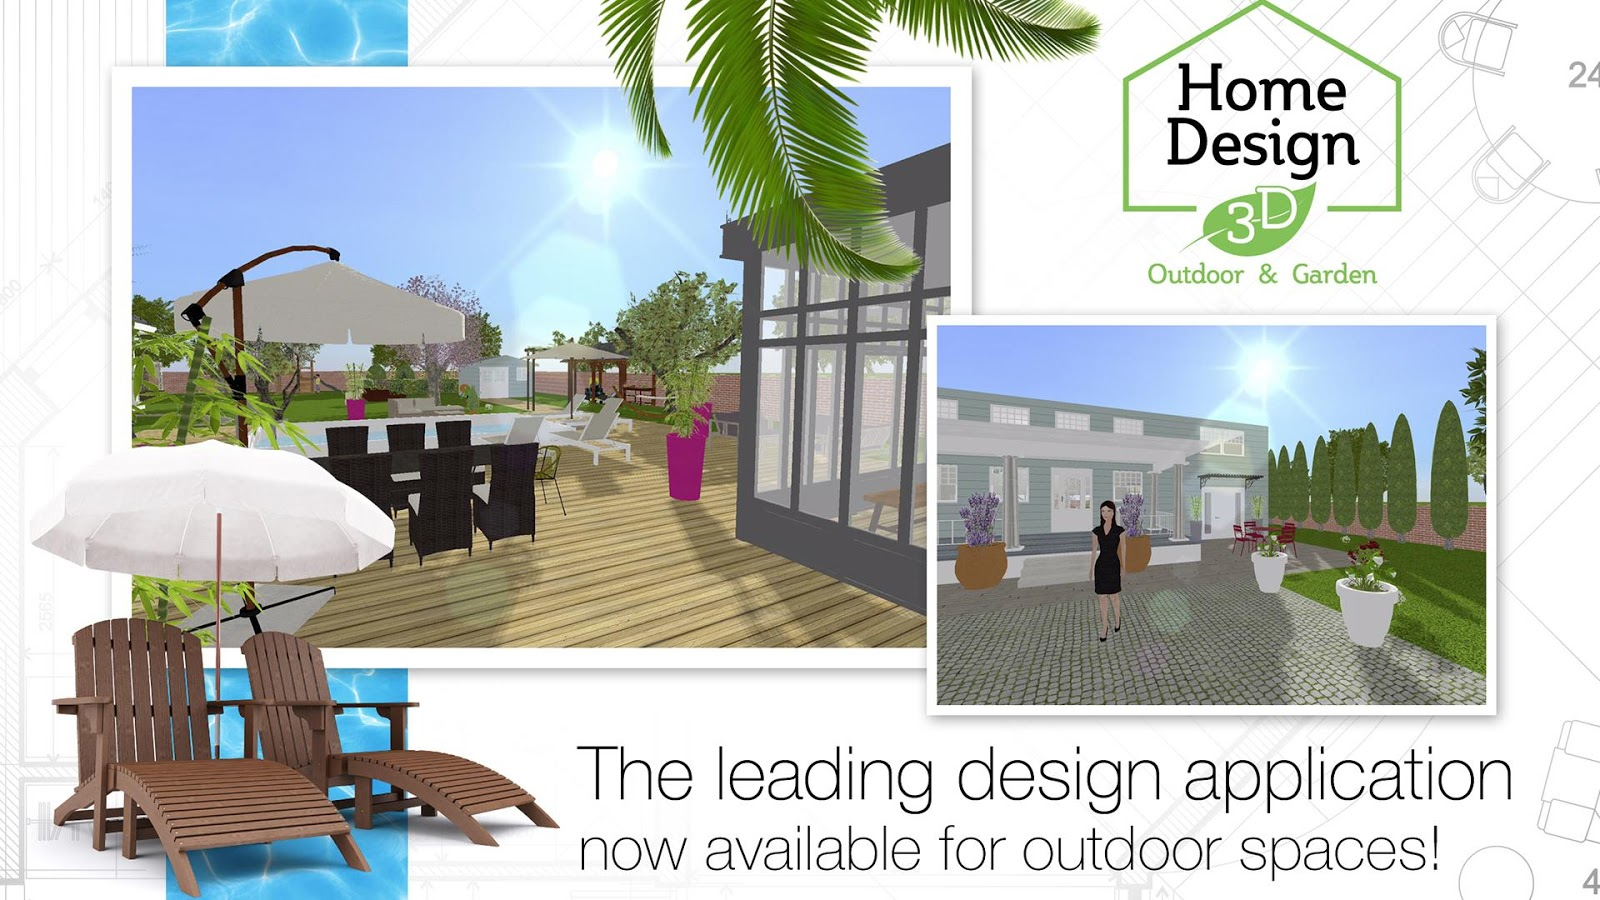 Home design 3d outdoor garden android apps on google play for Online 3d building design